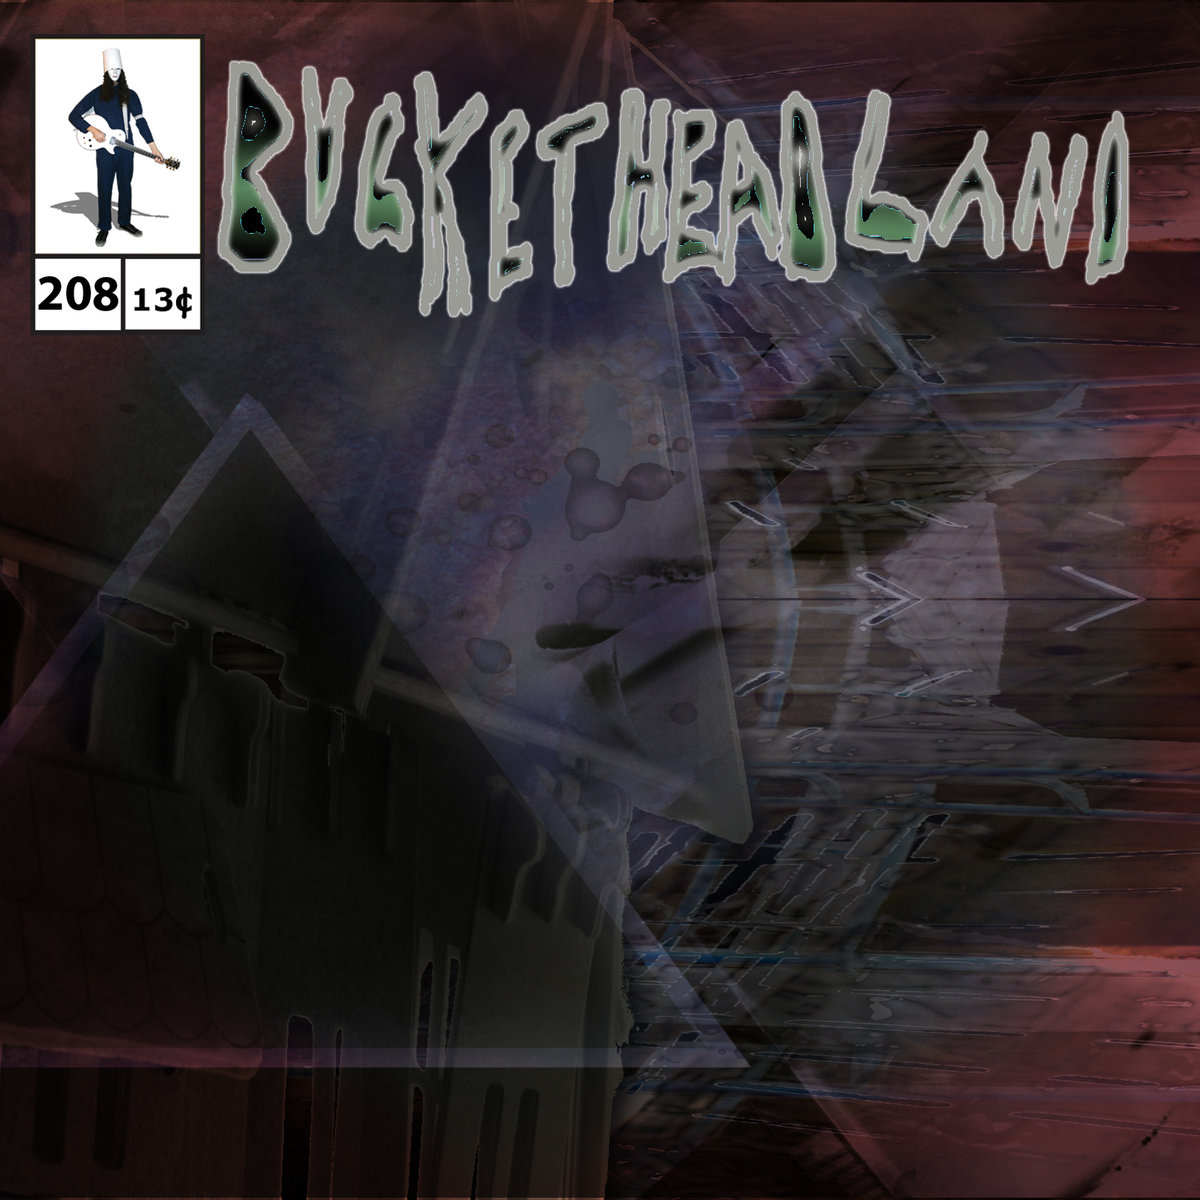 Buckethead - Pike 208: The Wishing Brook (2015)